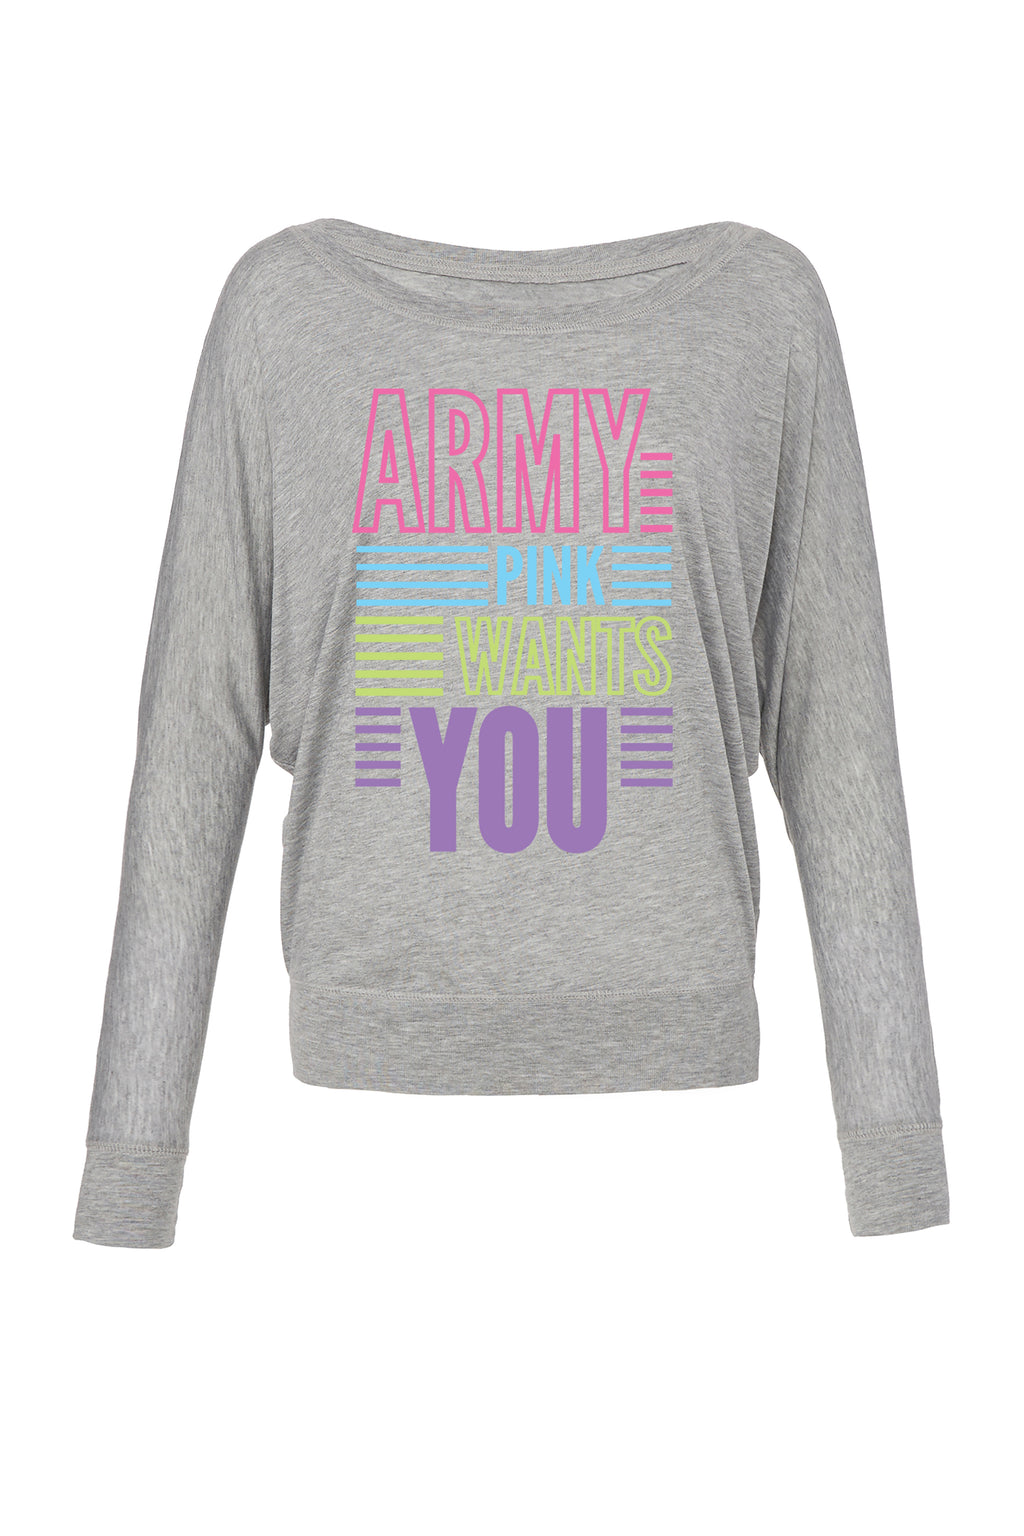 Athletic Heather Graphic Long Sleeve: Army Pink Wants You for 42.00 at ARMY PINK